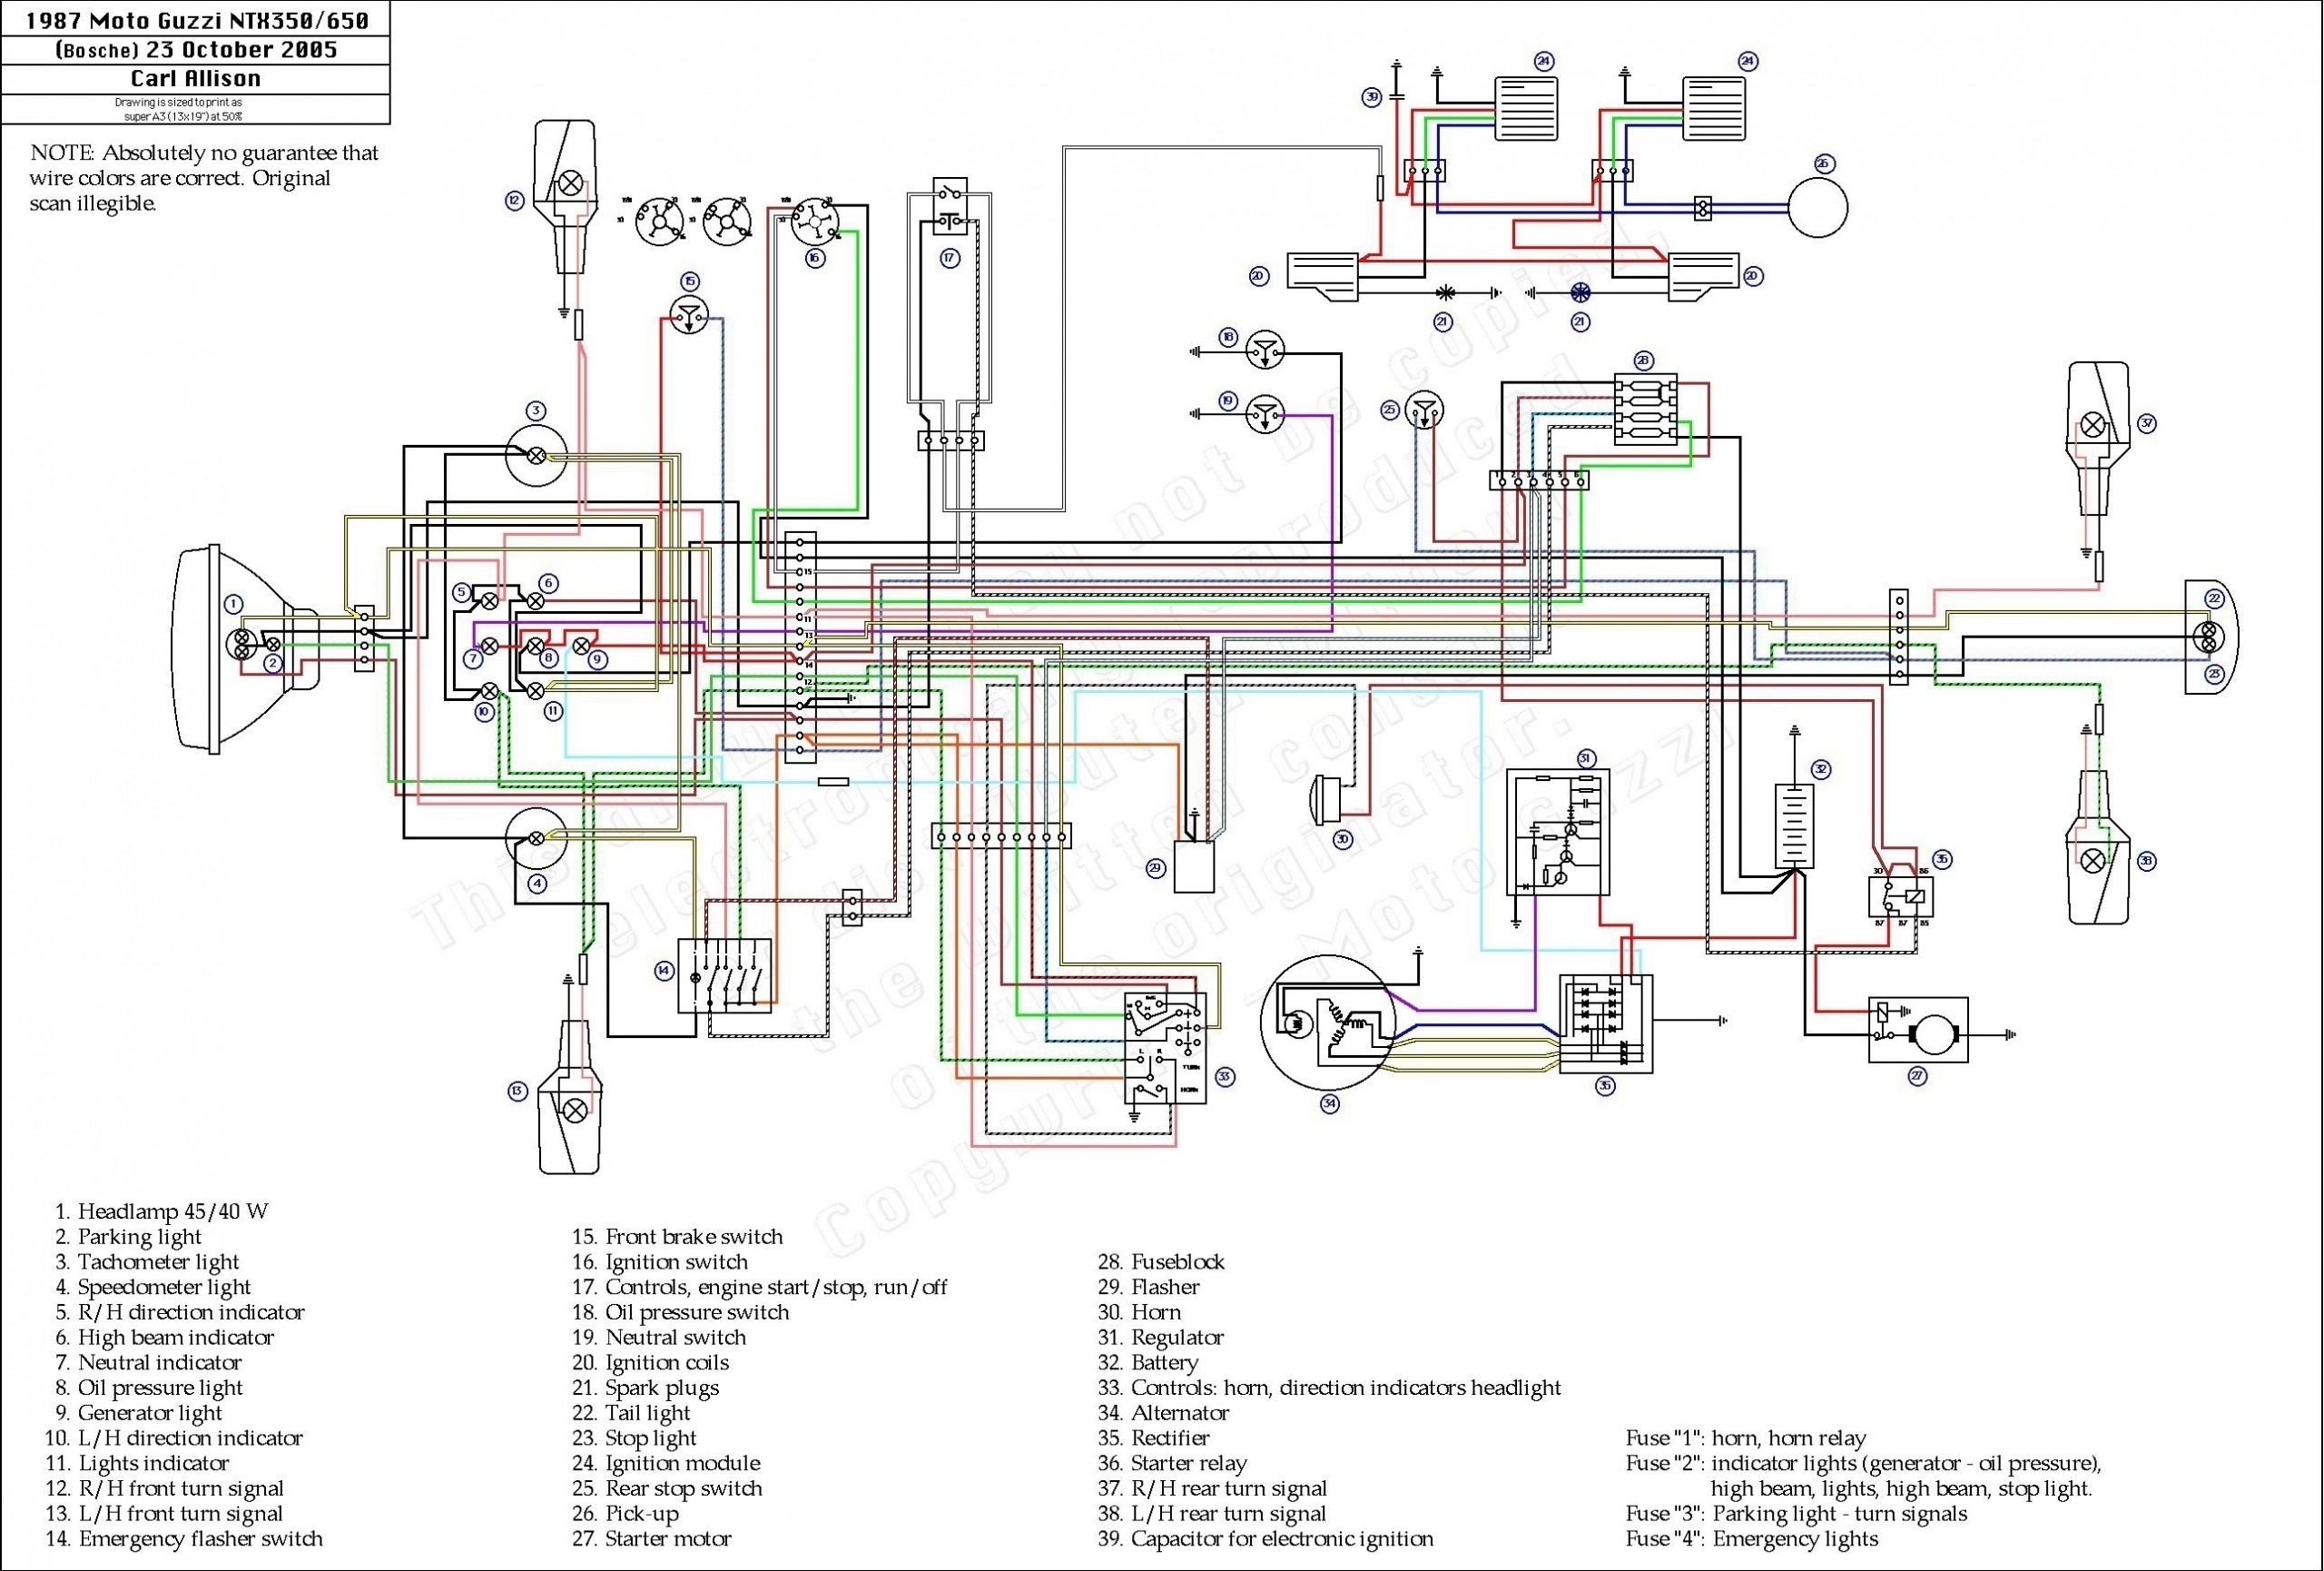 1986 Wire Digram ford Ignition Module Diagram] 2007 110cc Chinese atv Wiring Diagram Full Version Of 1986 Wire Digram ford Ignition Module